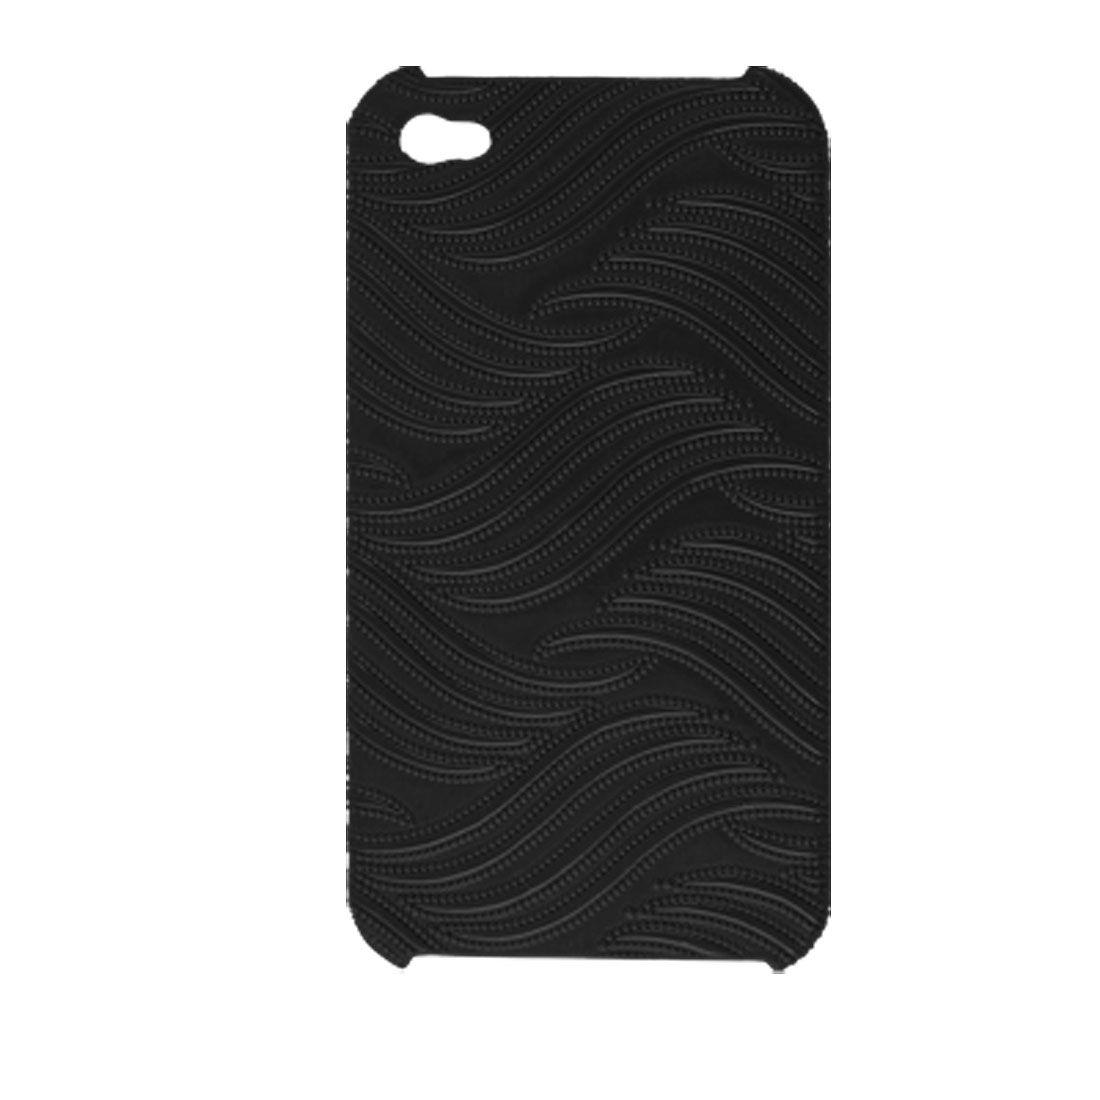 External Texture Black Faux Leather Covered Hard Plastic Cover for iPhone 4